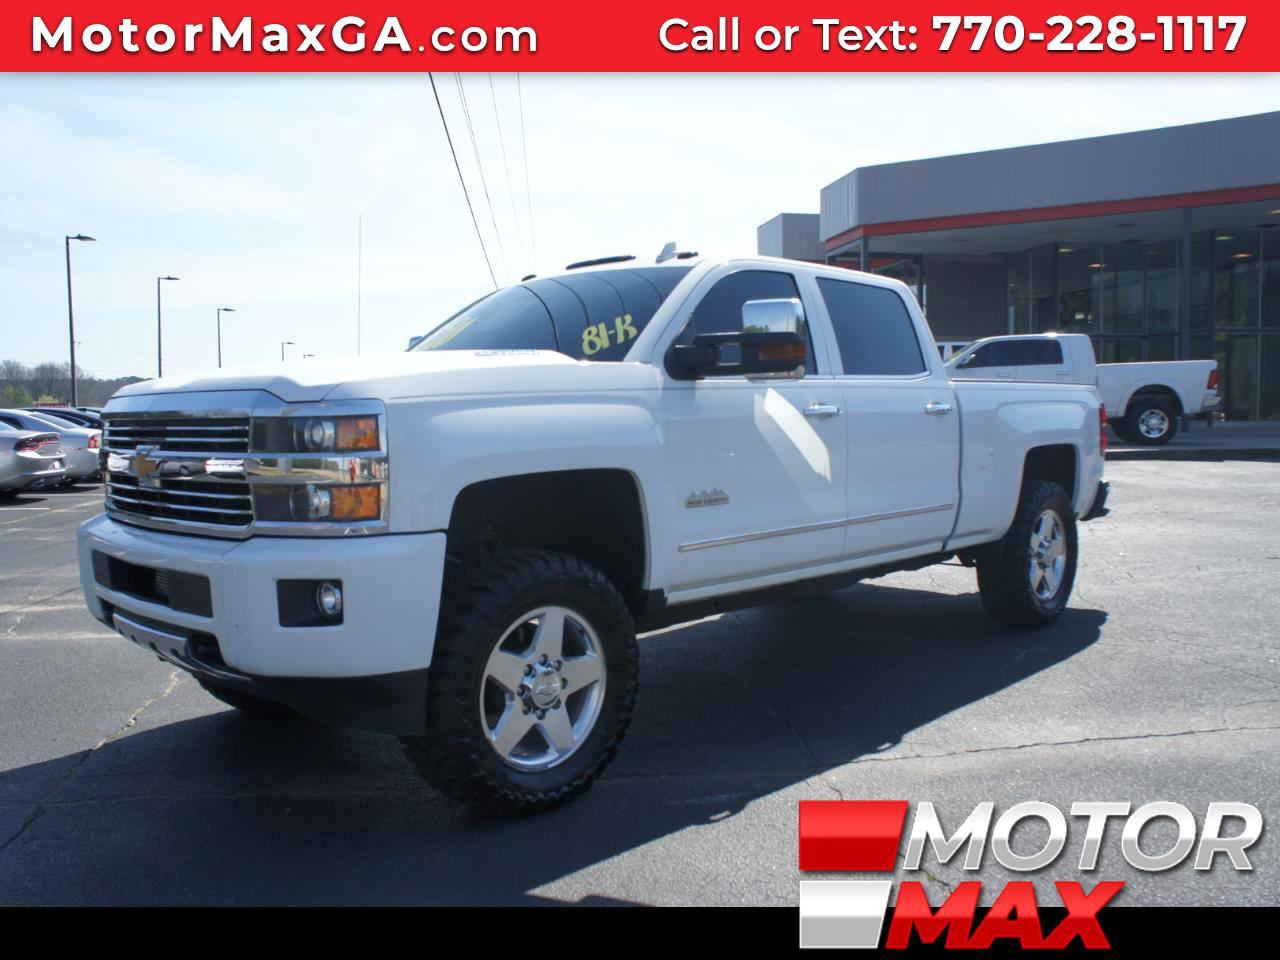 "2015 Chevrolet Silverado 2500 4WD CREW CAB 153.7"" HIGH COUNTRY"